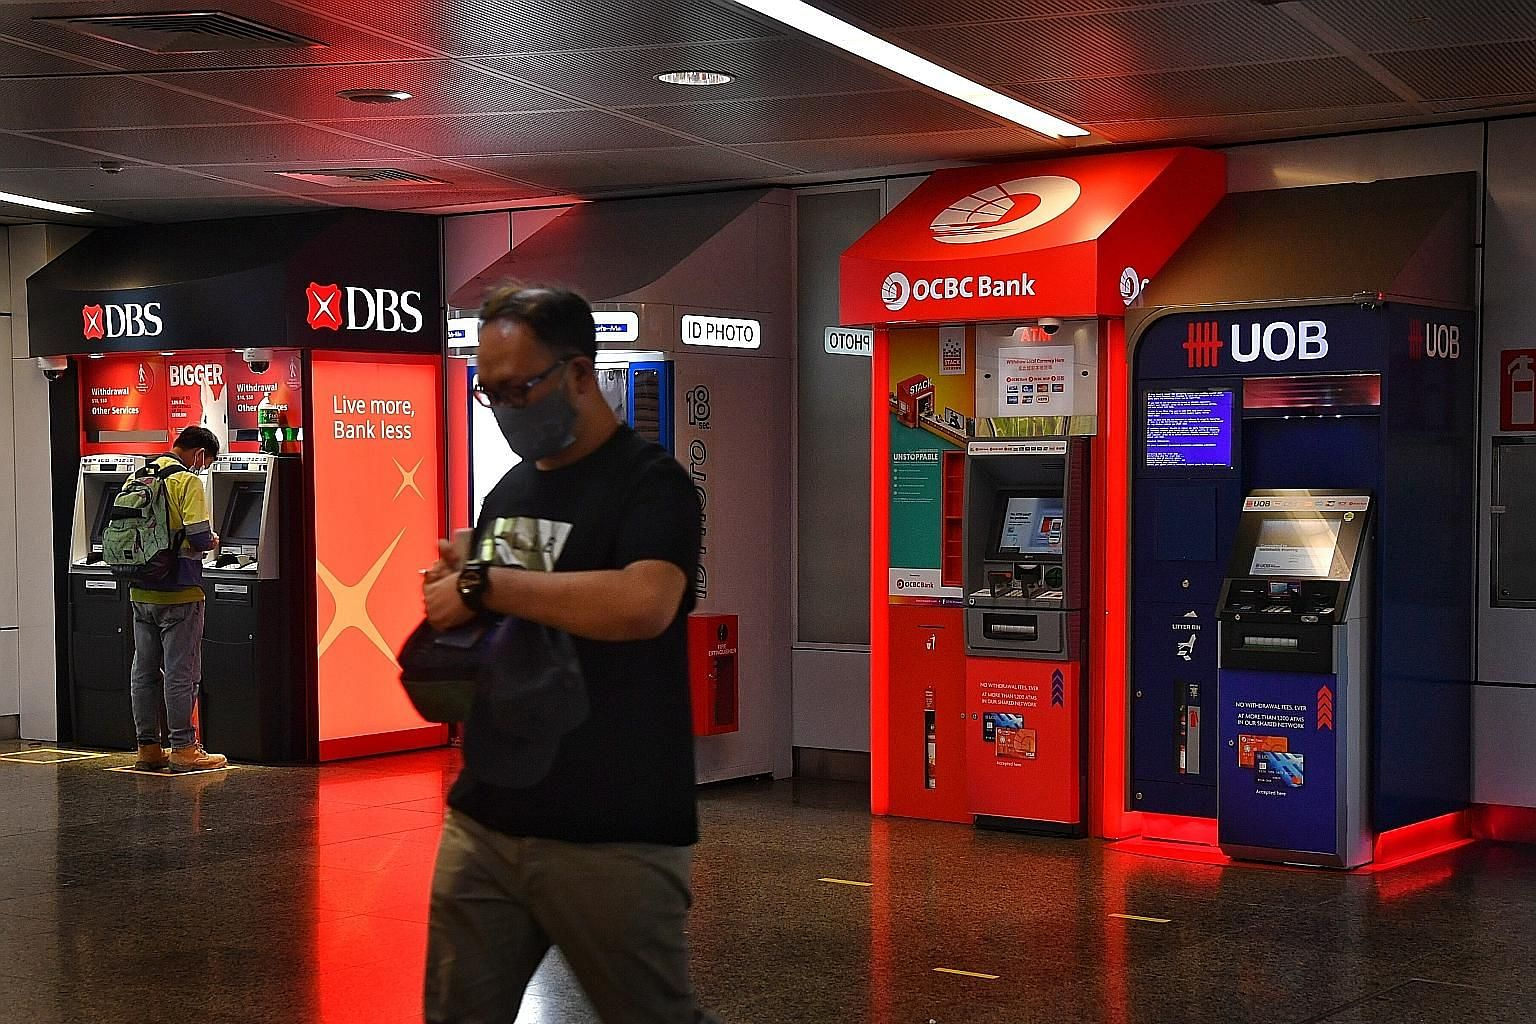 DBS, OCBC and UOB account for nearly 40 per cent of the Straits Times Index, which dropped as much as 2.4 per cent before ending down 1.7 per cent yesterday. ST PHOTO: CHONG JUN LIANG